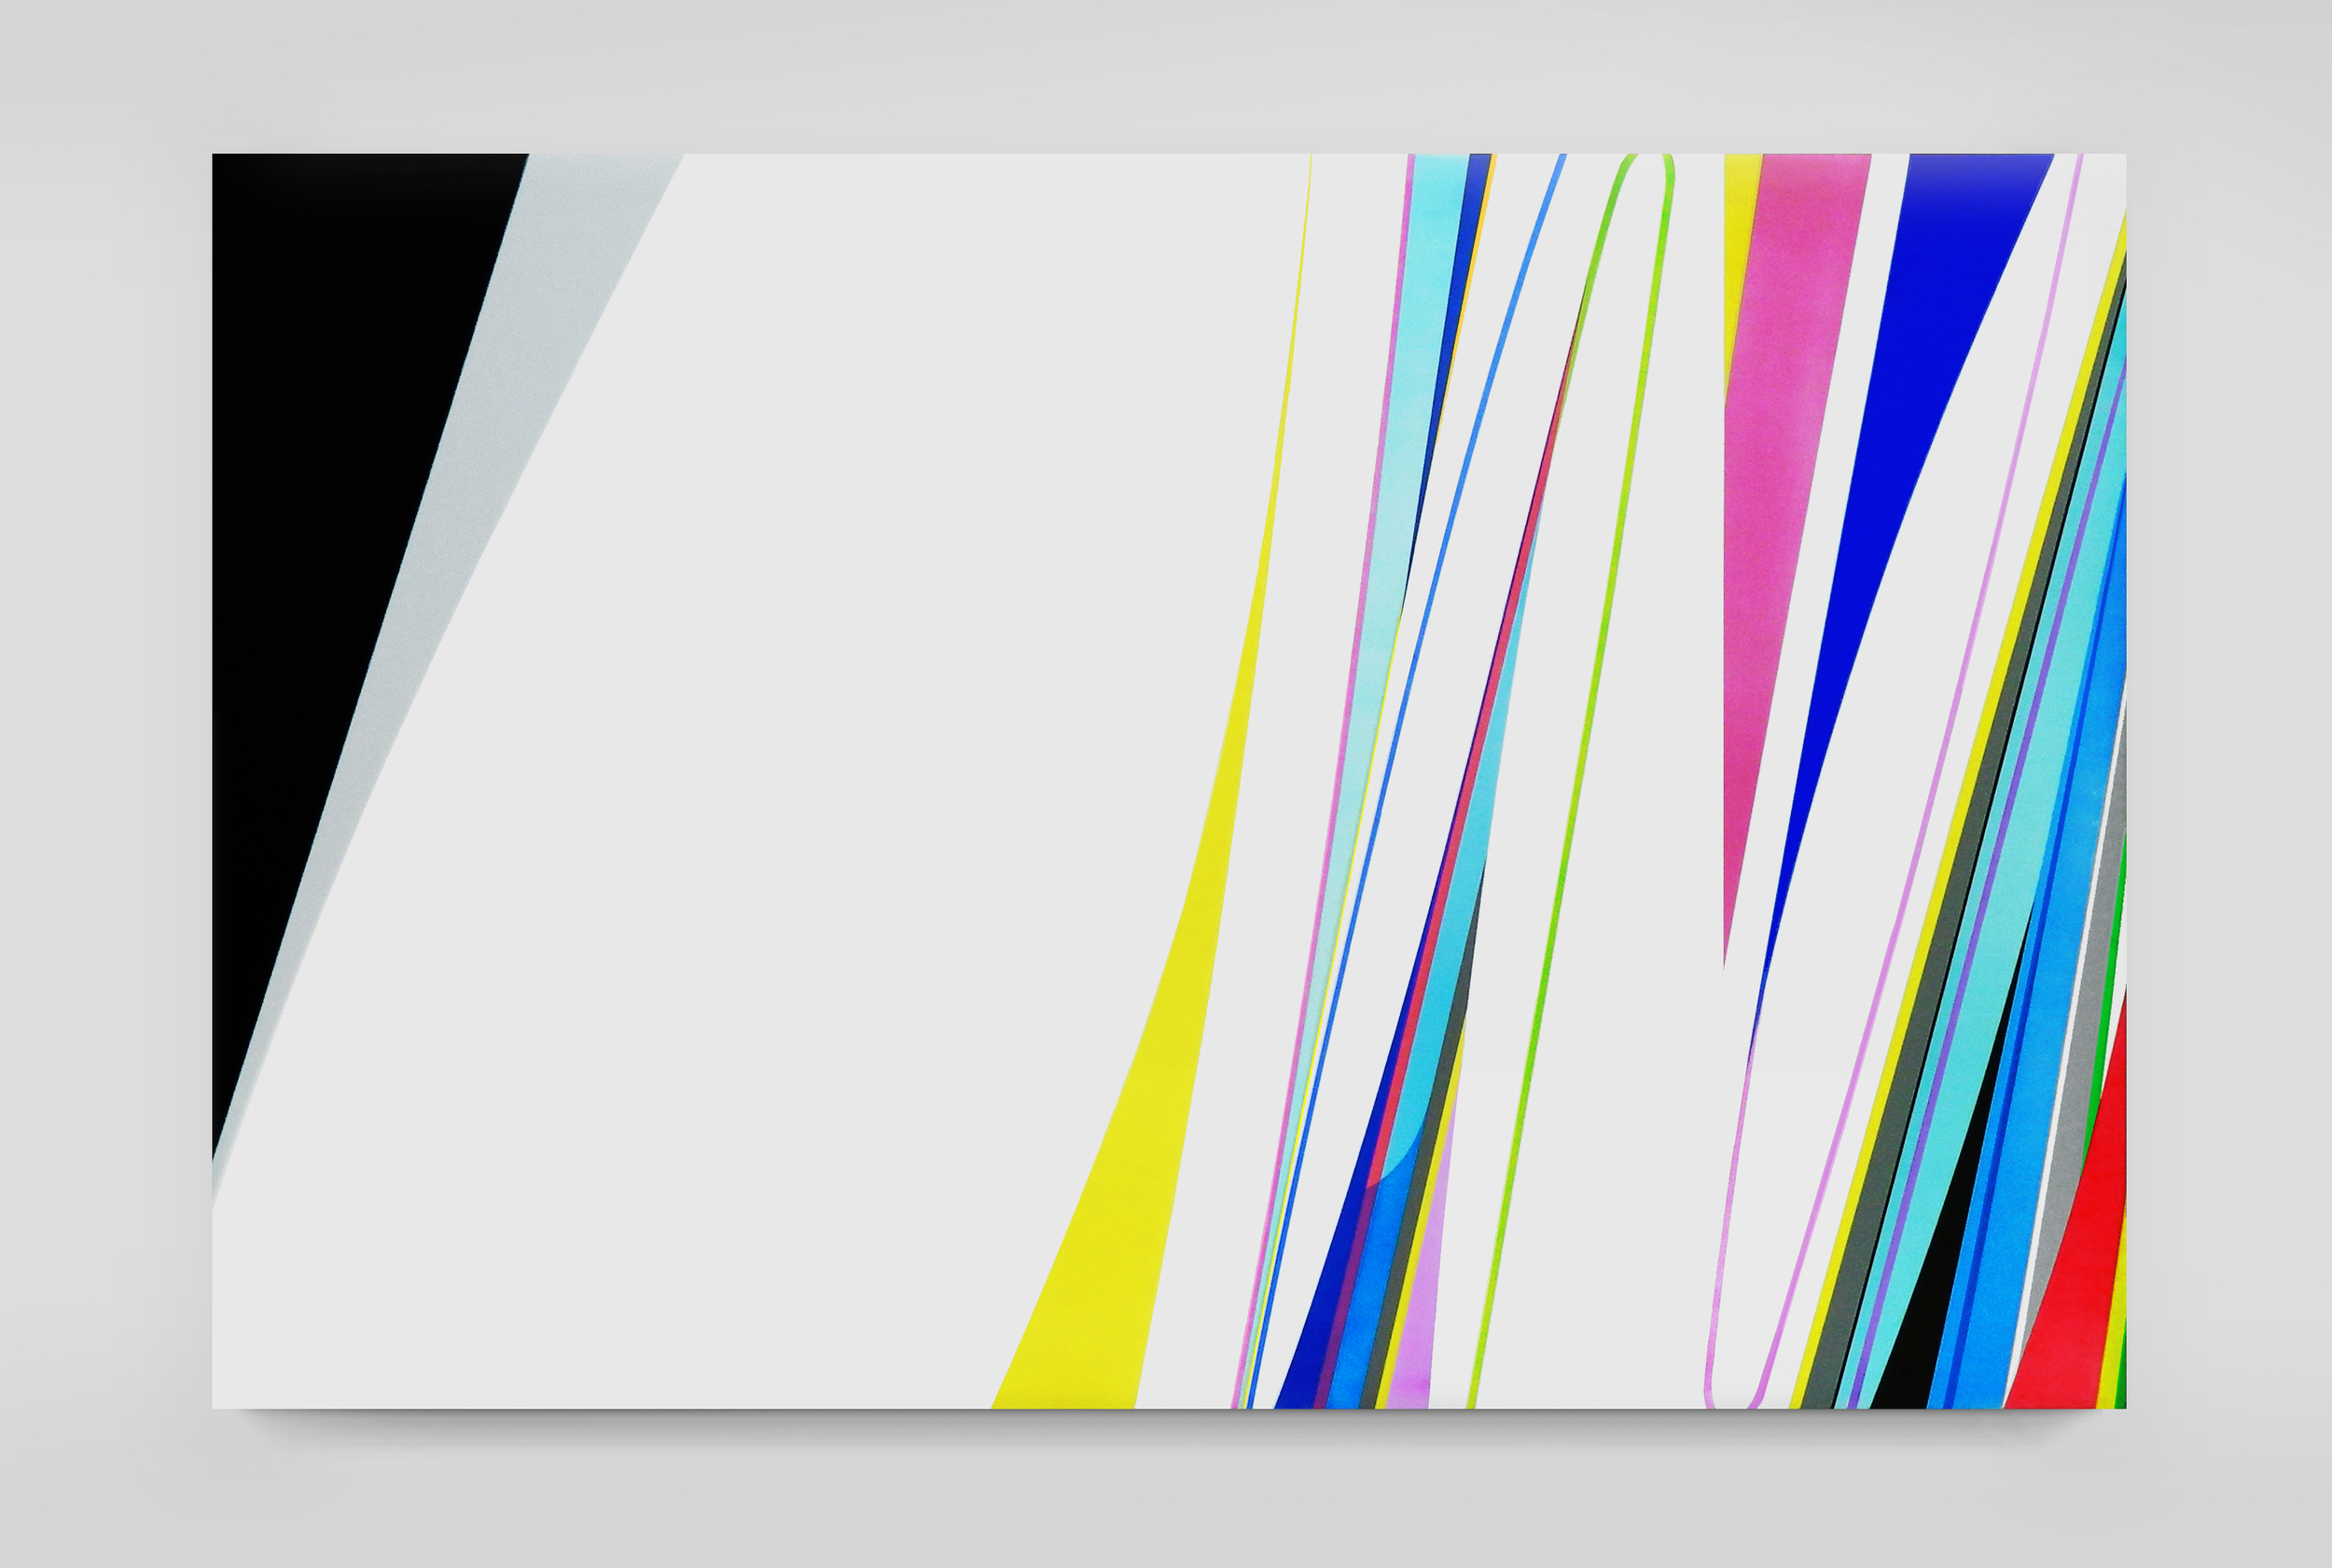 DION JOHNSON, Vibration, 2015, acrylic on canvas, 40 x 60 inches